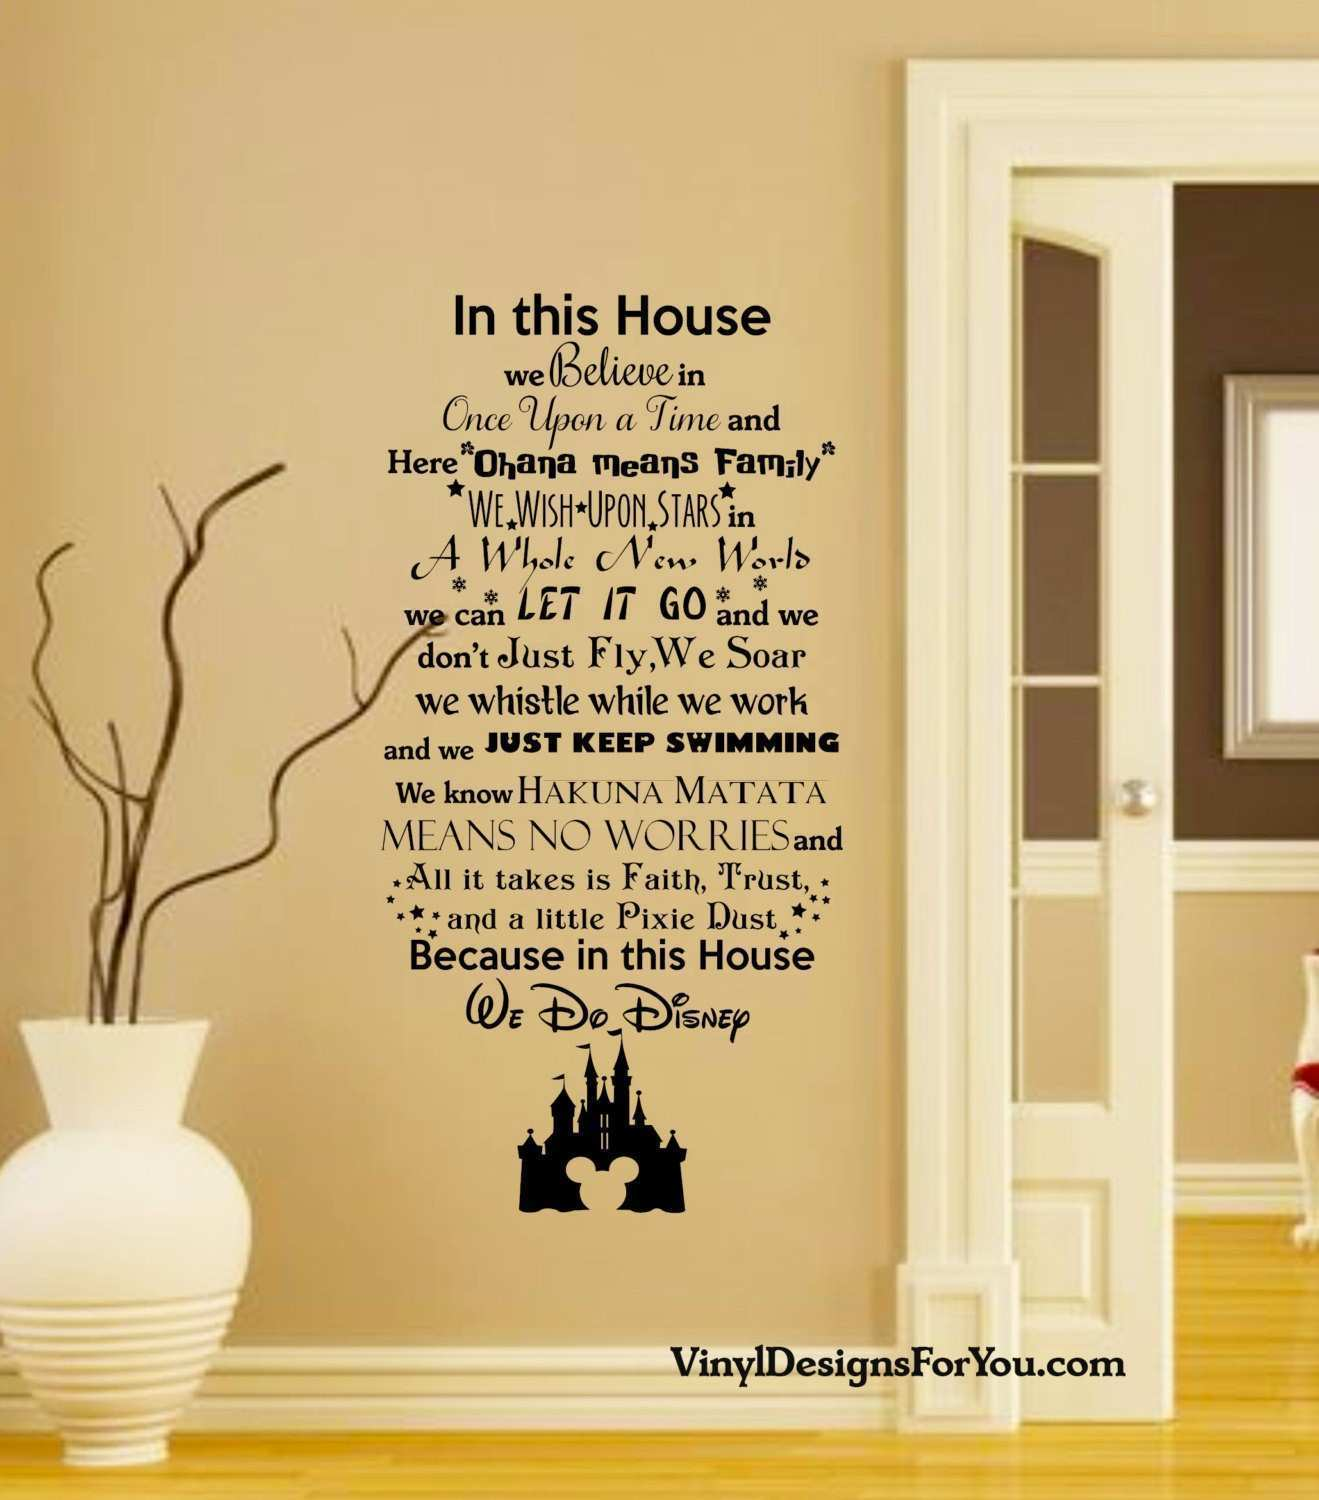 In this House We do Disney Wall Decal with Mickey Mouse house wall